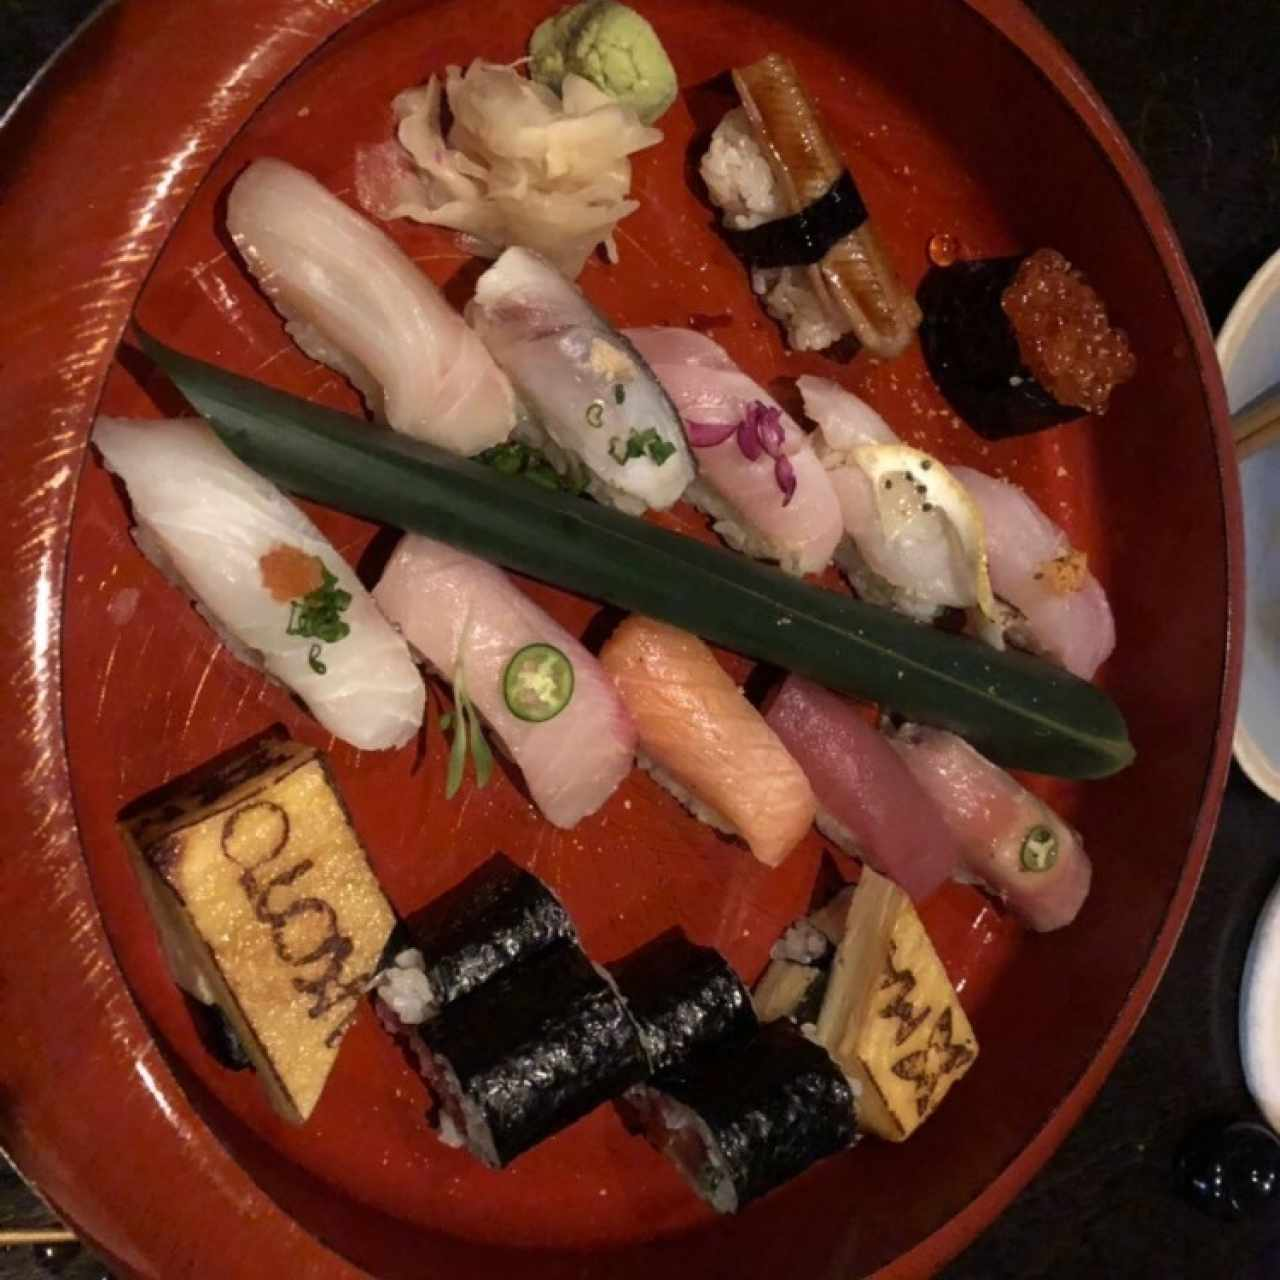 CHEF'S COMBINATIONS - SUSHI SAMPLER